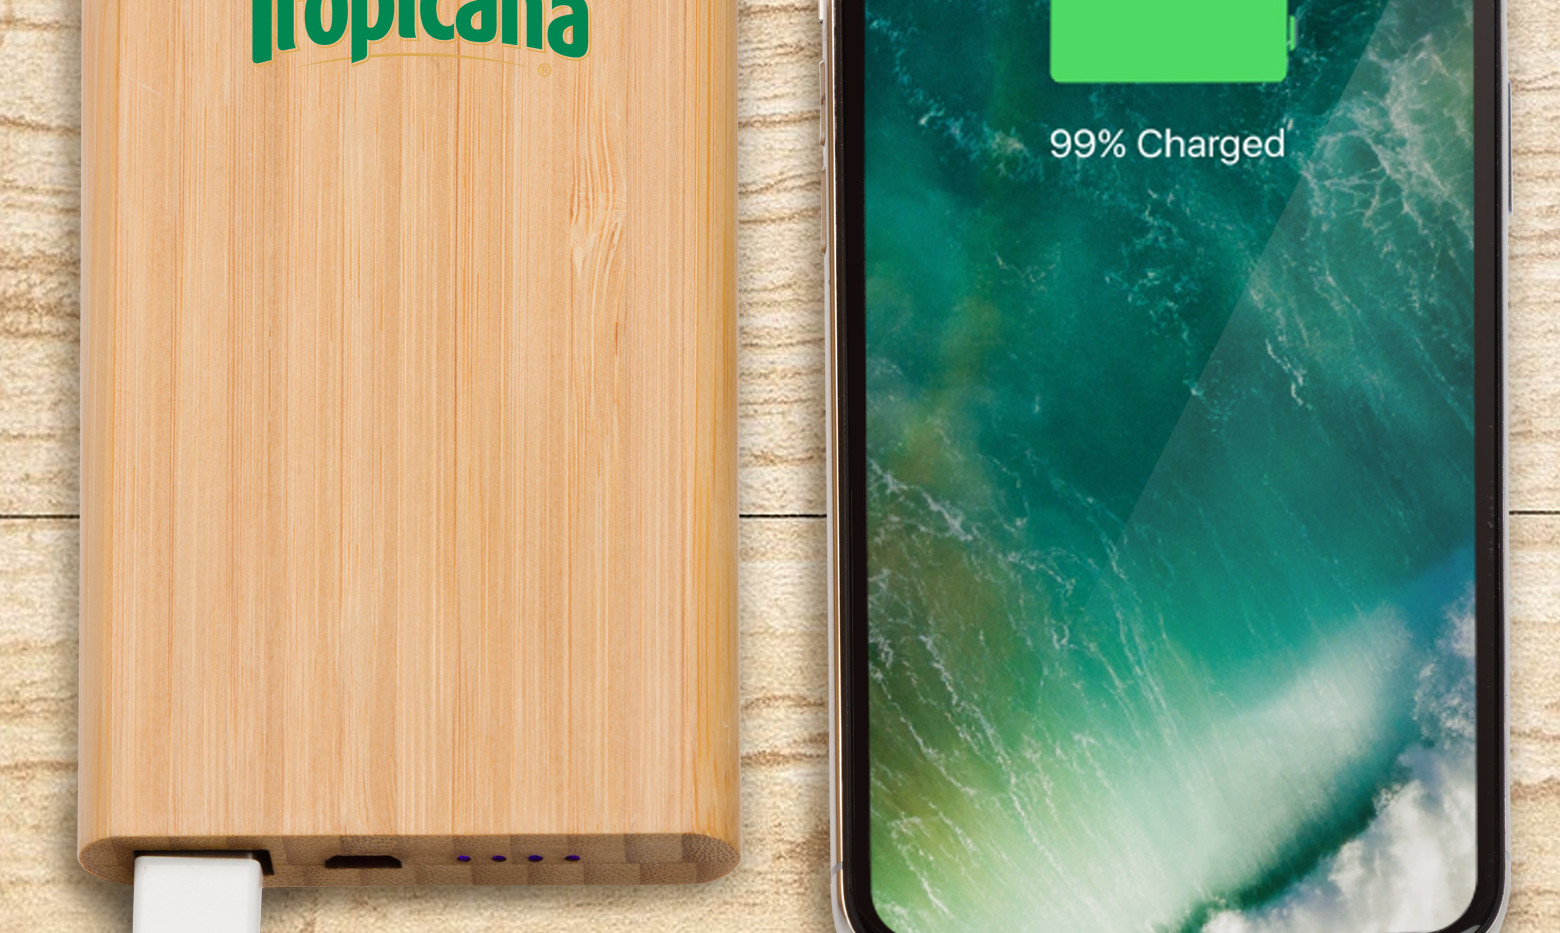 Bamboo Power Bank Hero Shot 2.jpg